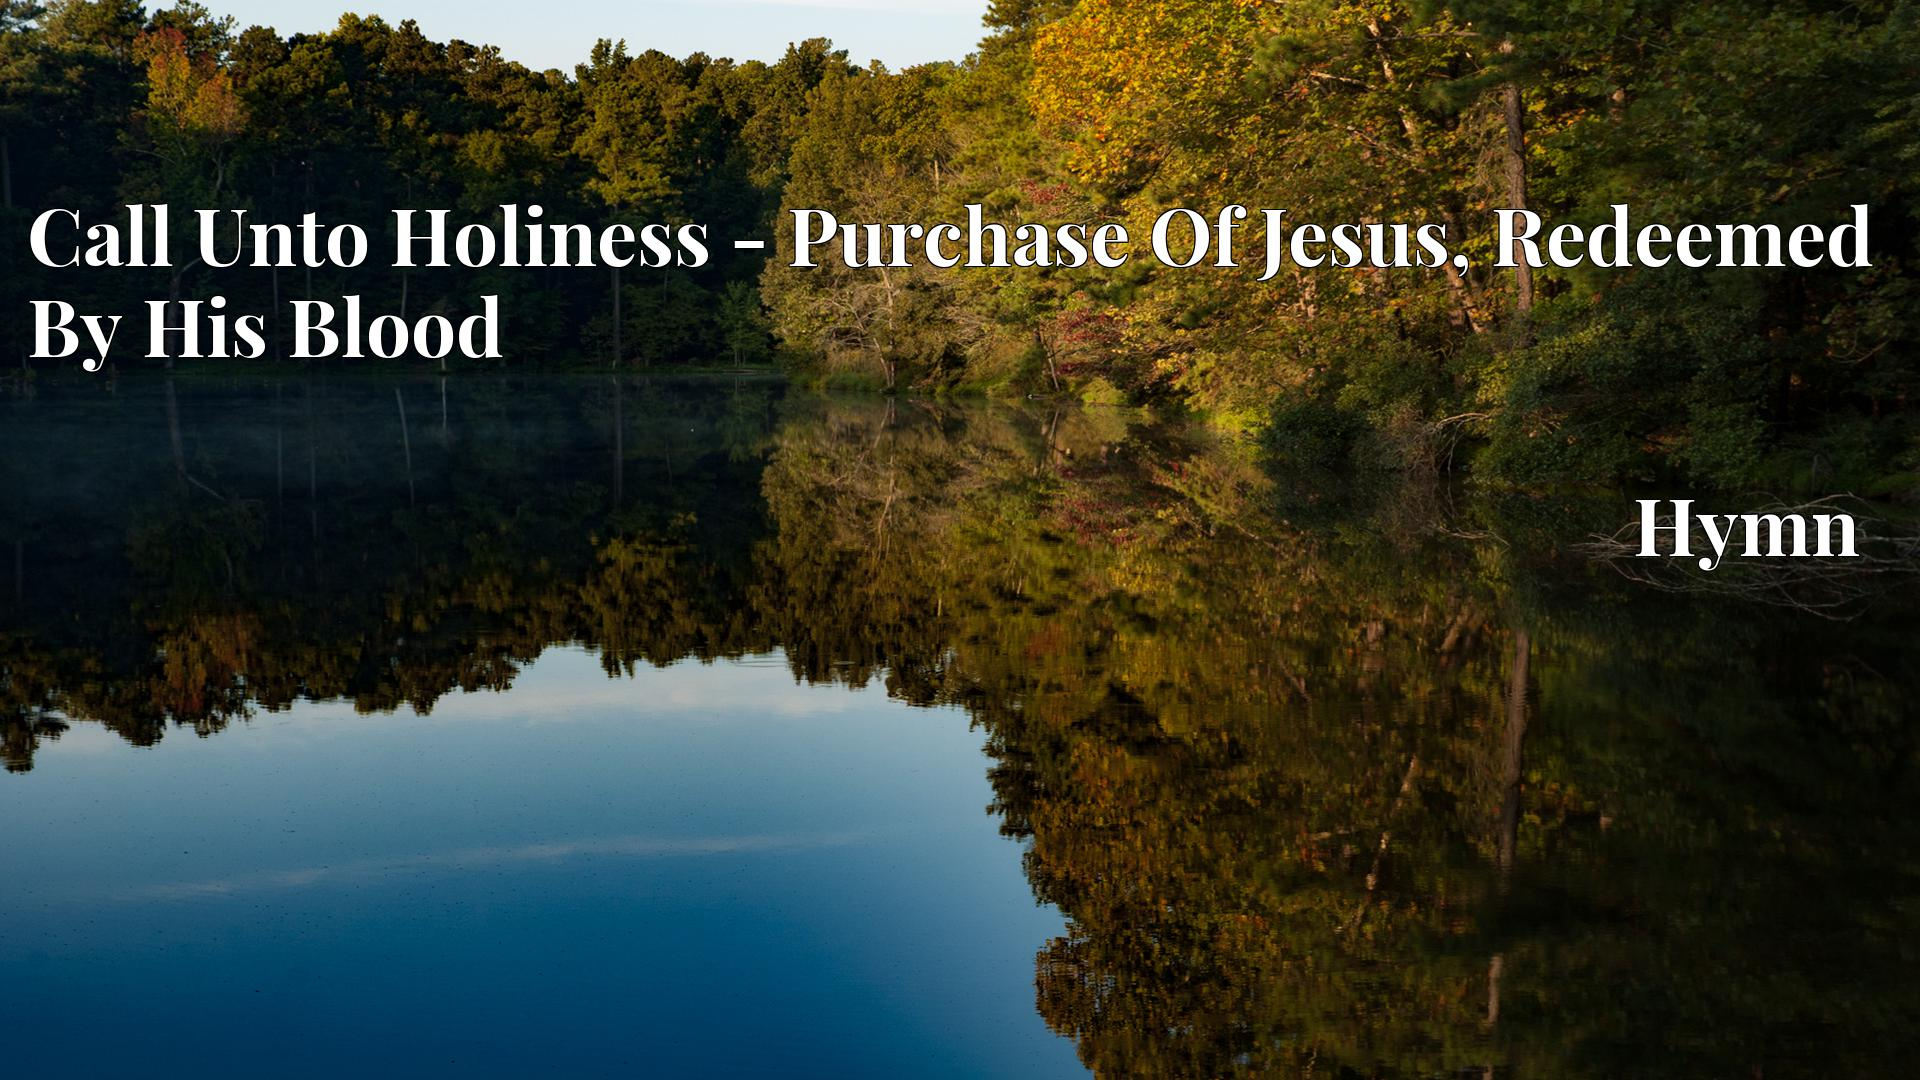 Call Unto Holiness - Purchase Of Jesus, Redeemed By His Blood Hymn